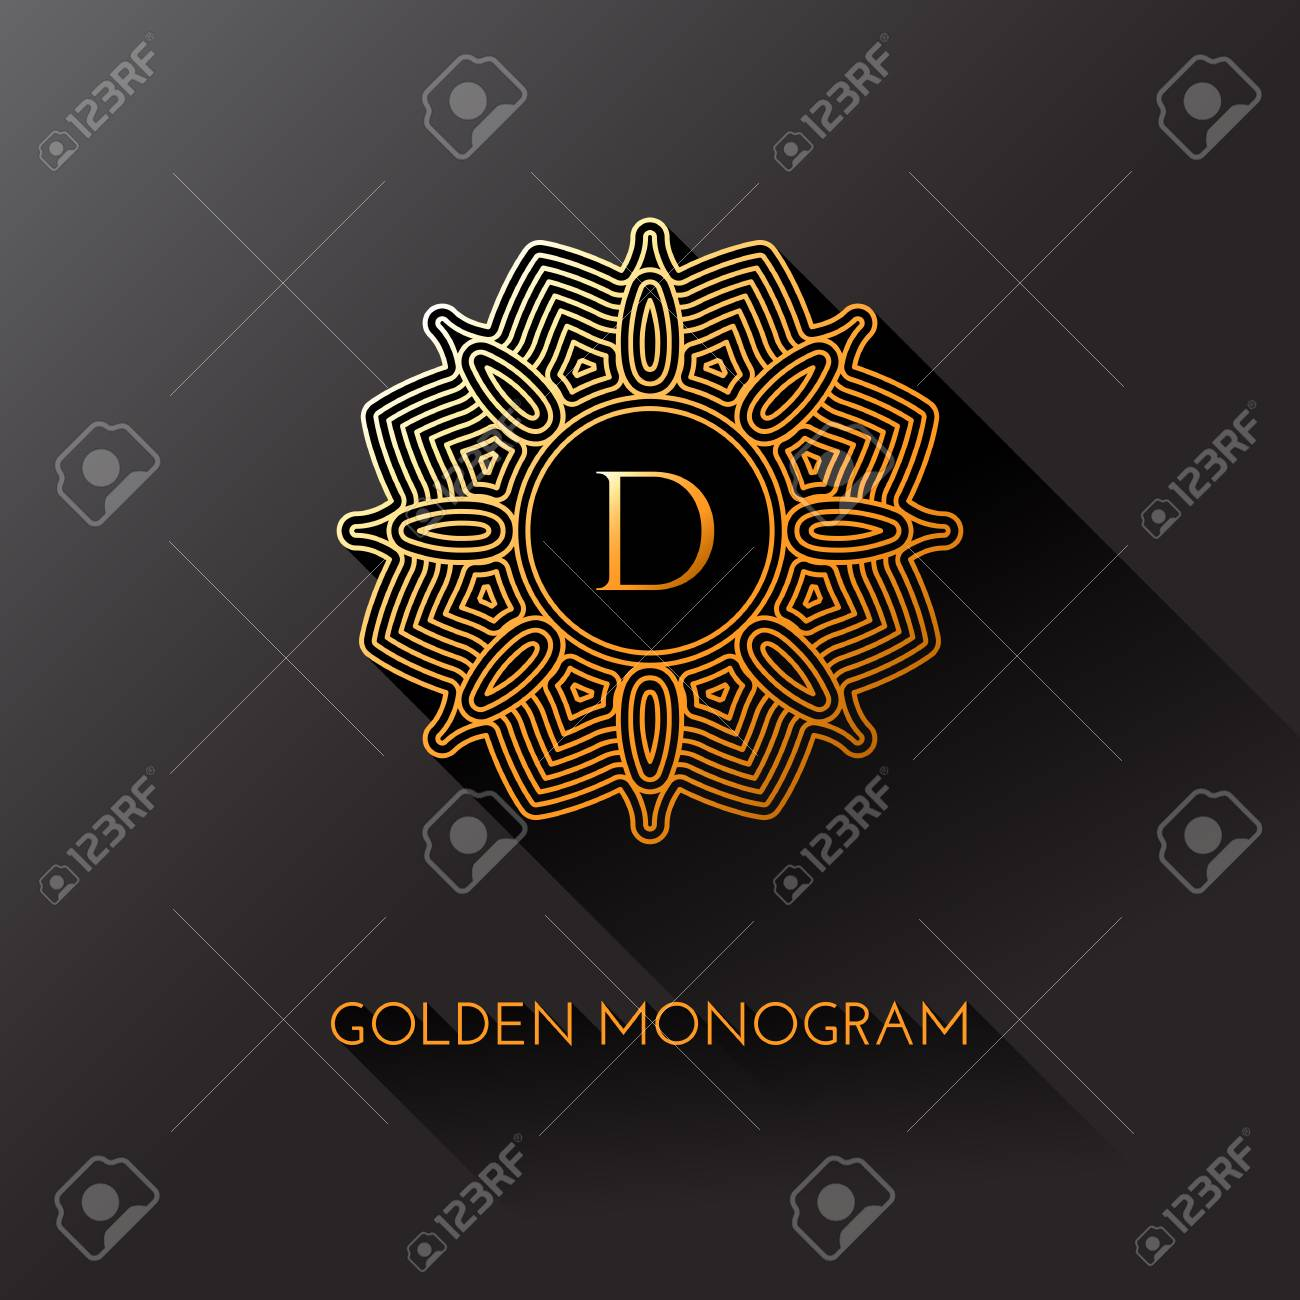 Golden Elegant Monogram With Letter D Template Design For Monogram